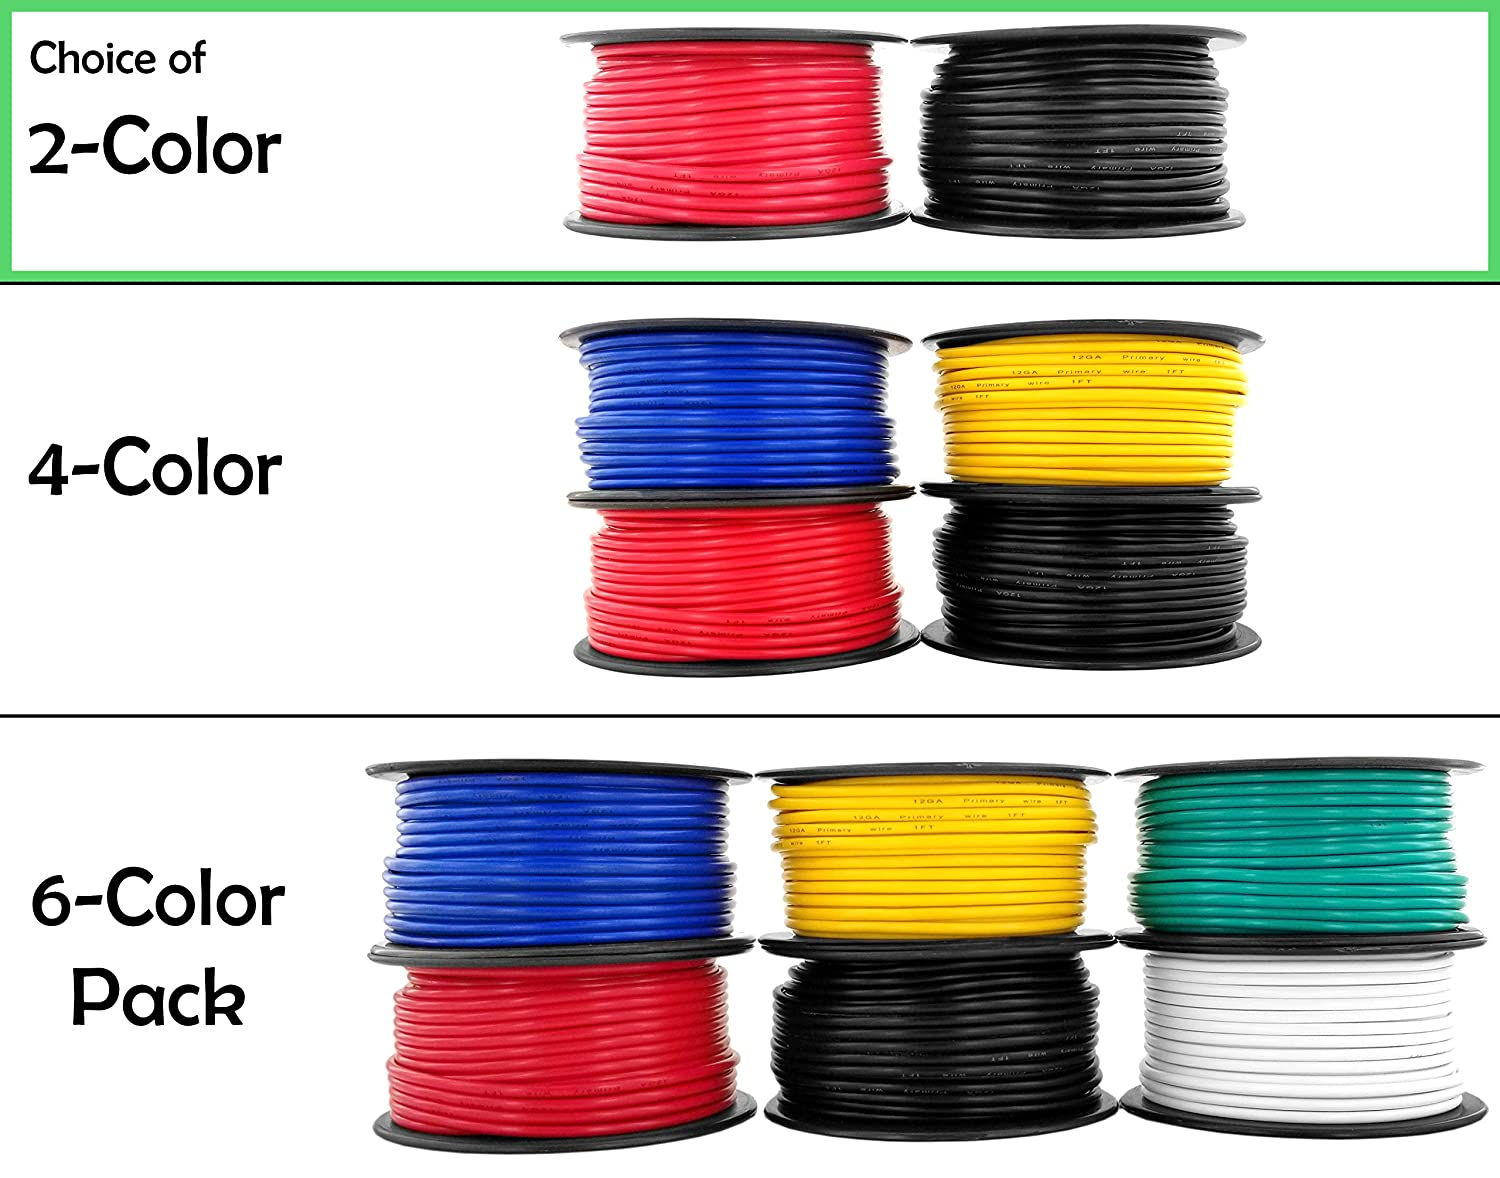 12 Gauge Copper Clad Aluminum Low Voltage Primary Wire 100 ft Red & Black (200 feet Total) for 12V Automotive Trailer Light Car Audio Stereo Harness Wiring (Also in 4 or 6 Color Combo) 81qZSDOj-yL